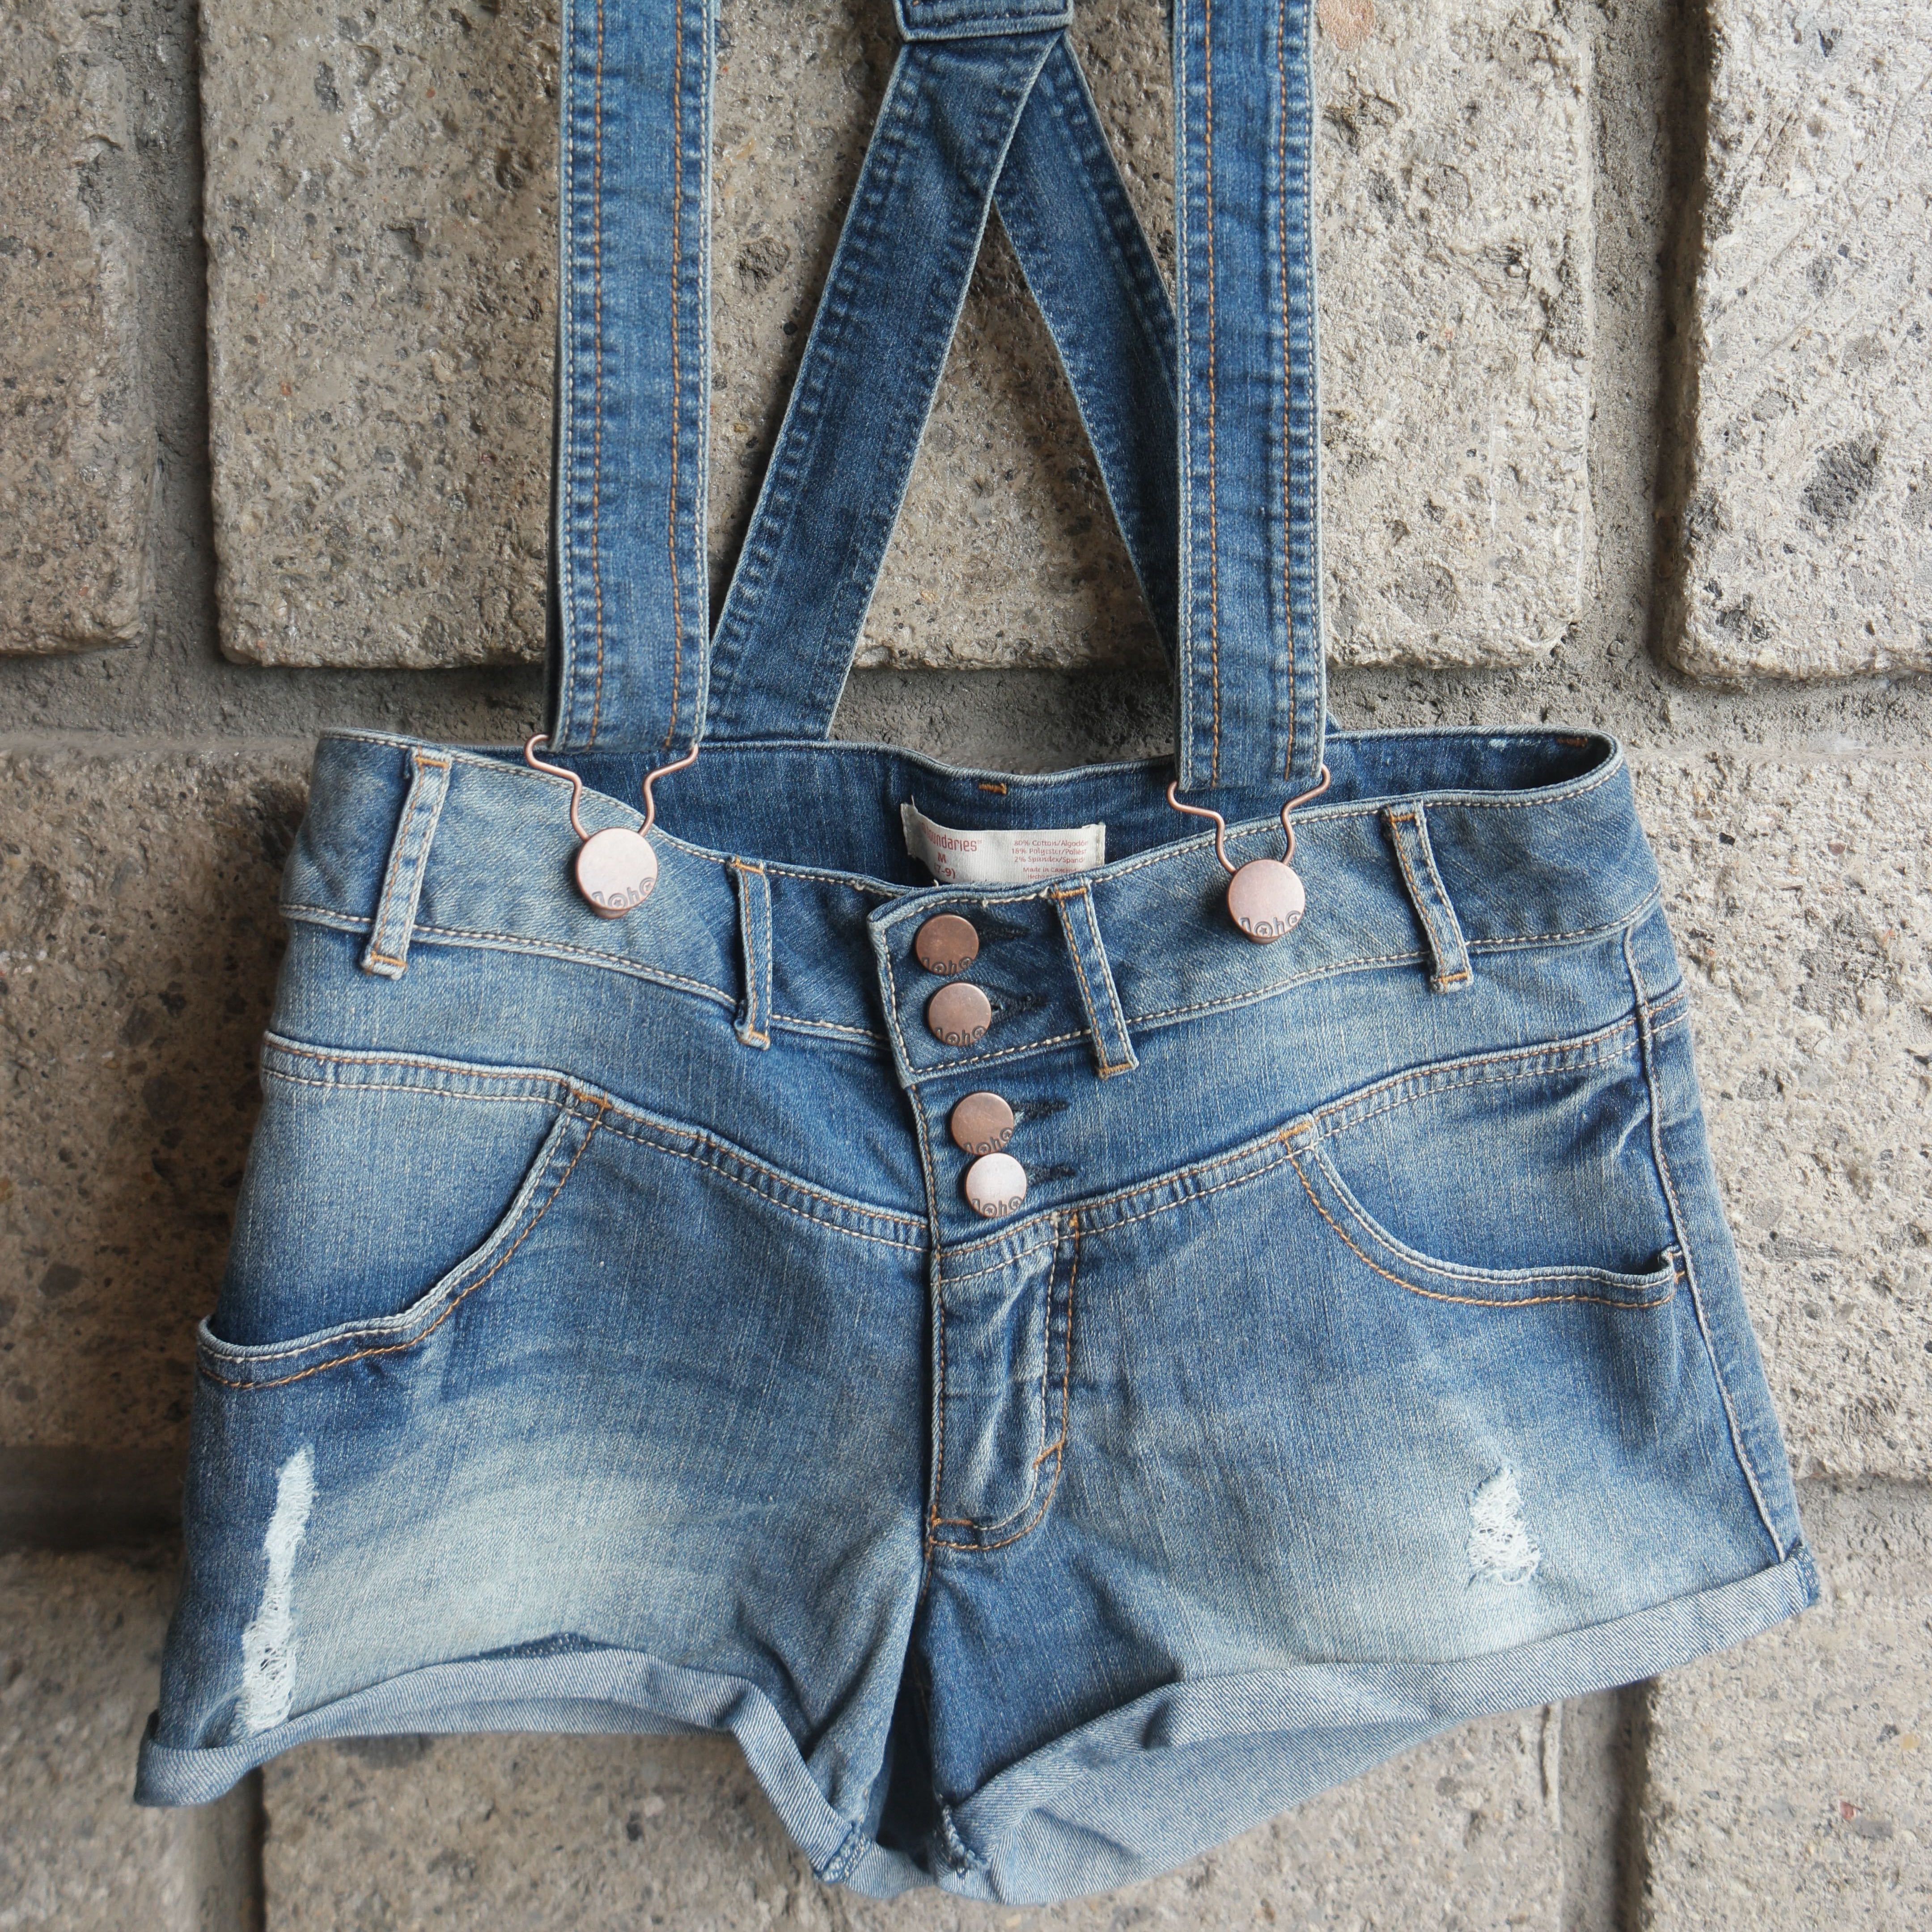 Jumper Denim Shorts